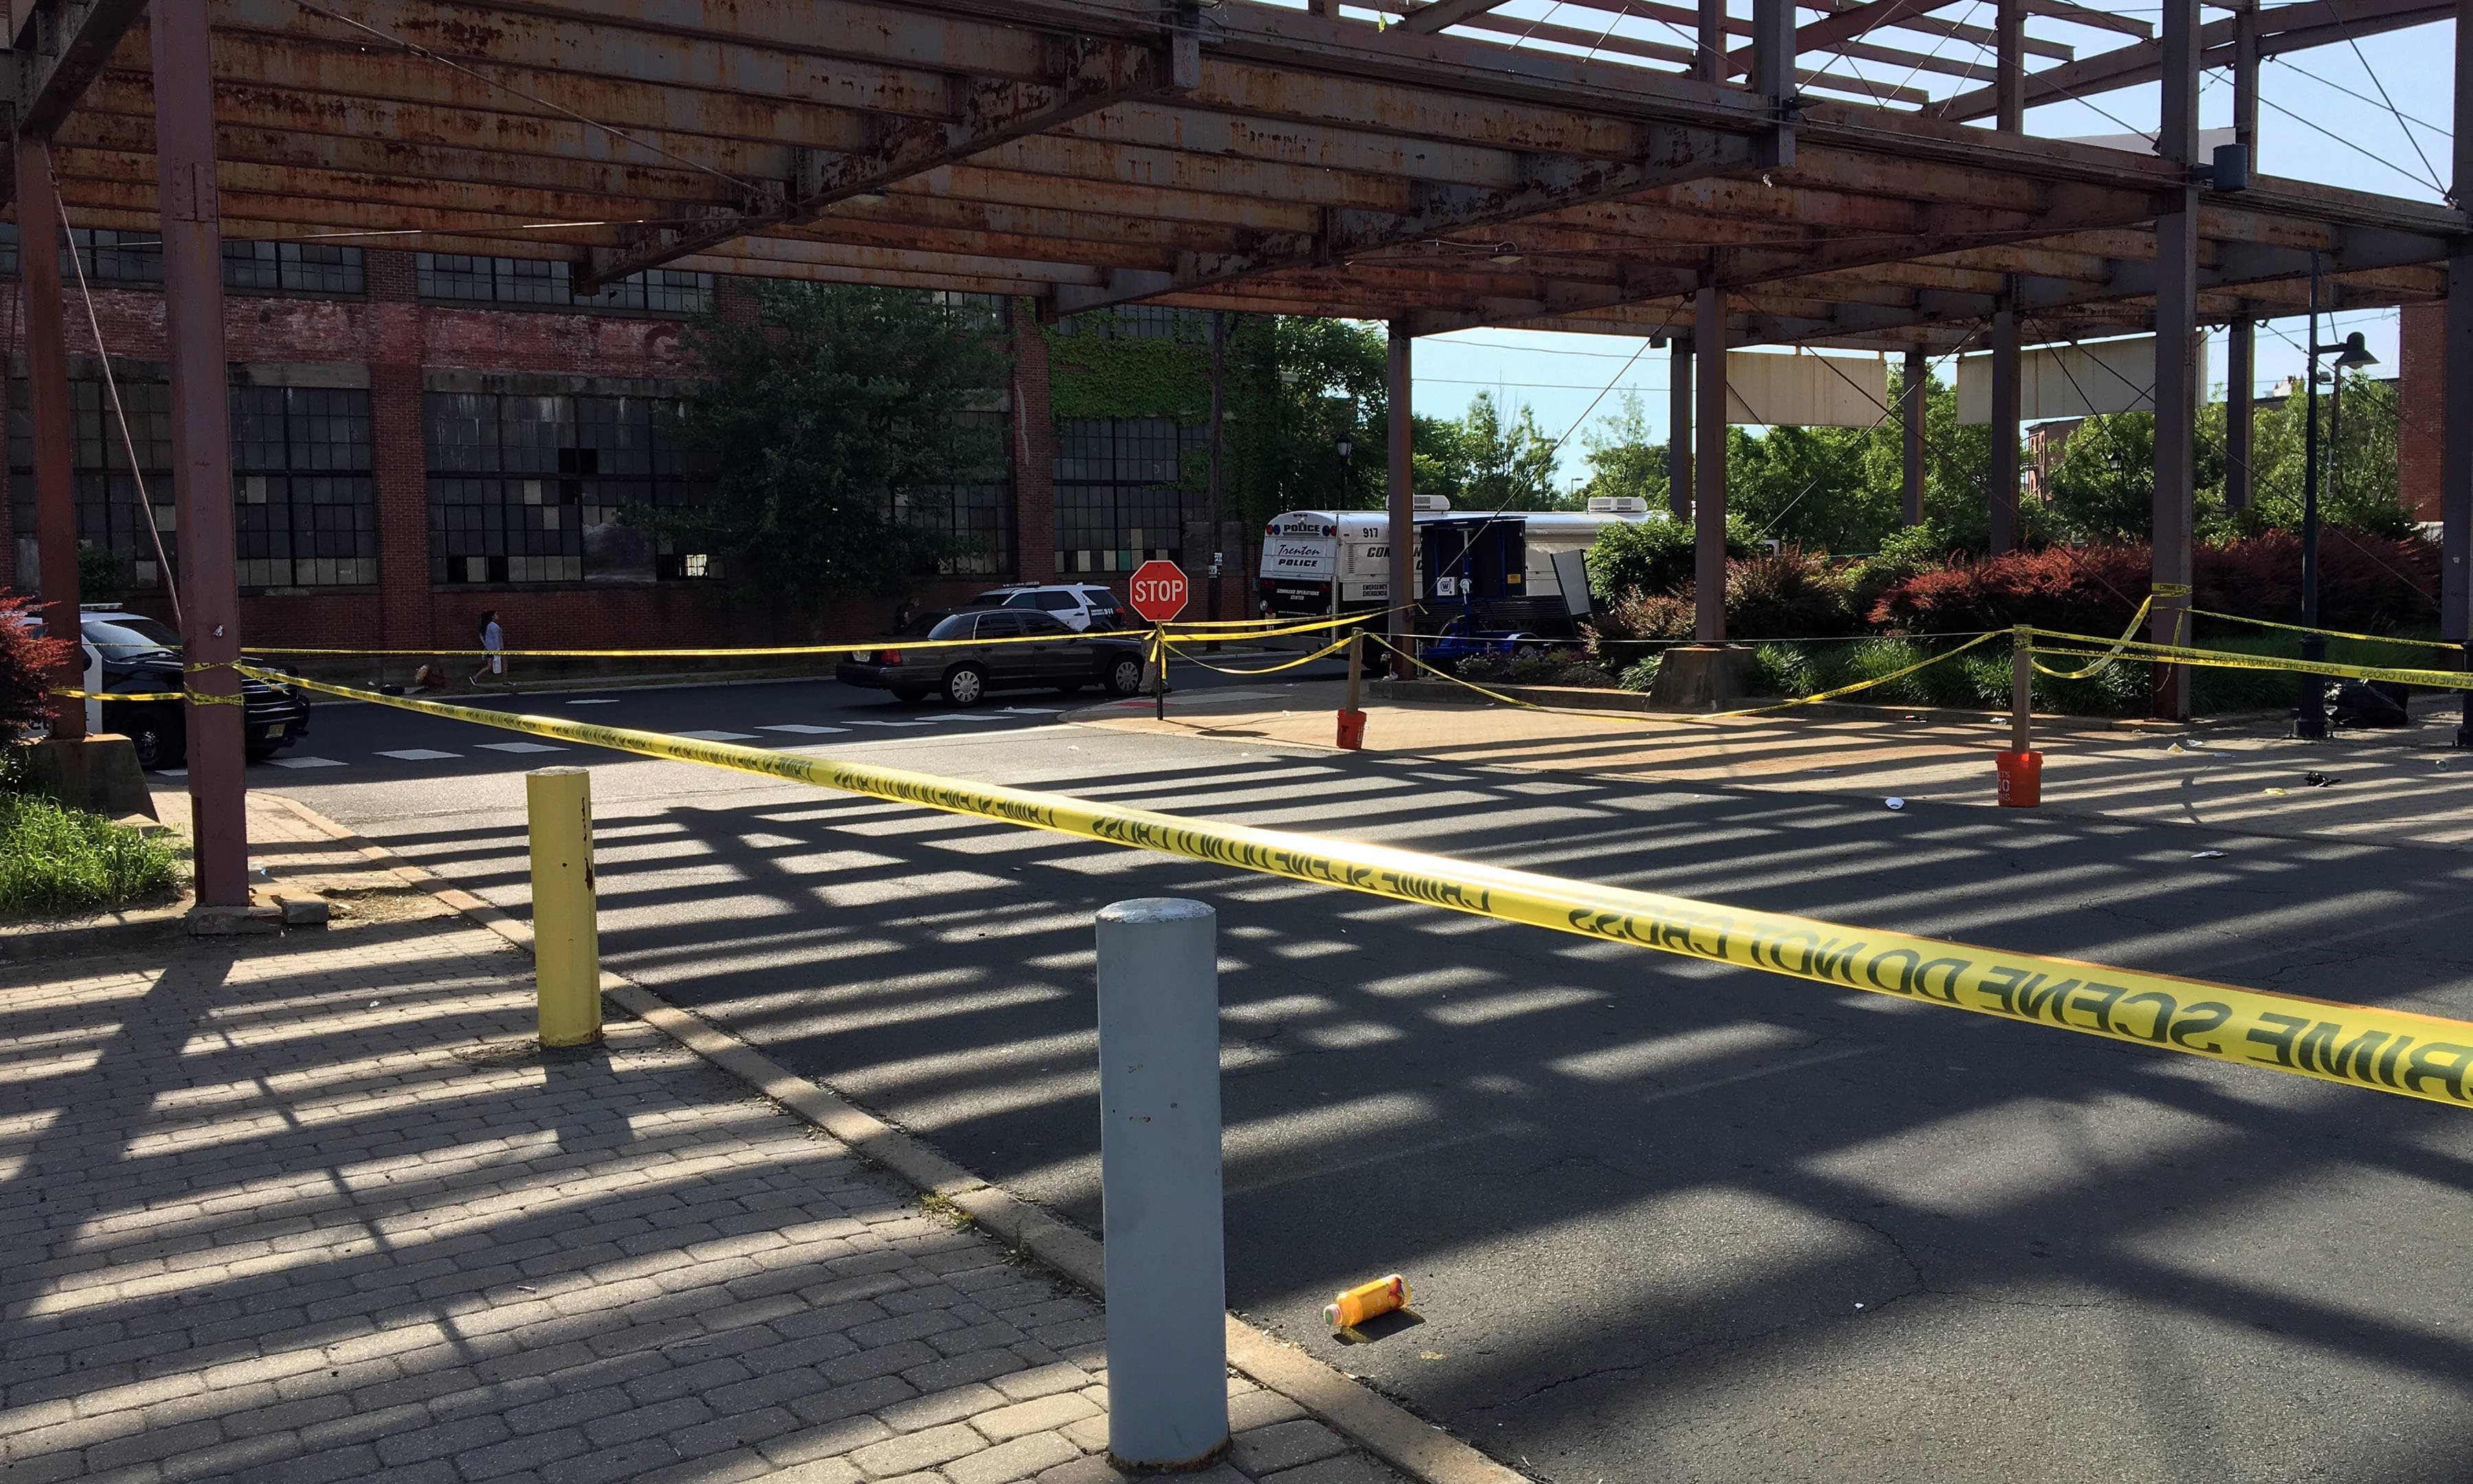 Suspect dead, 20 injured in shooting incident at arts festival in New Jersey